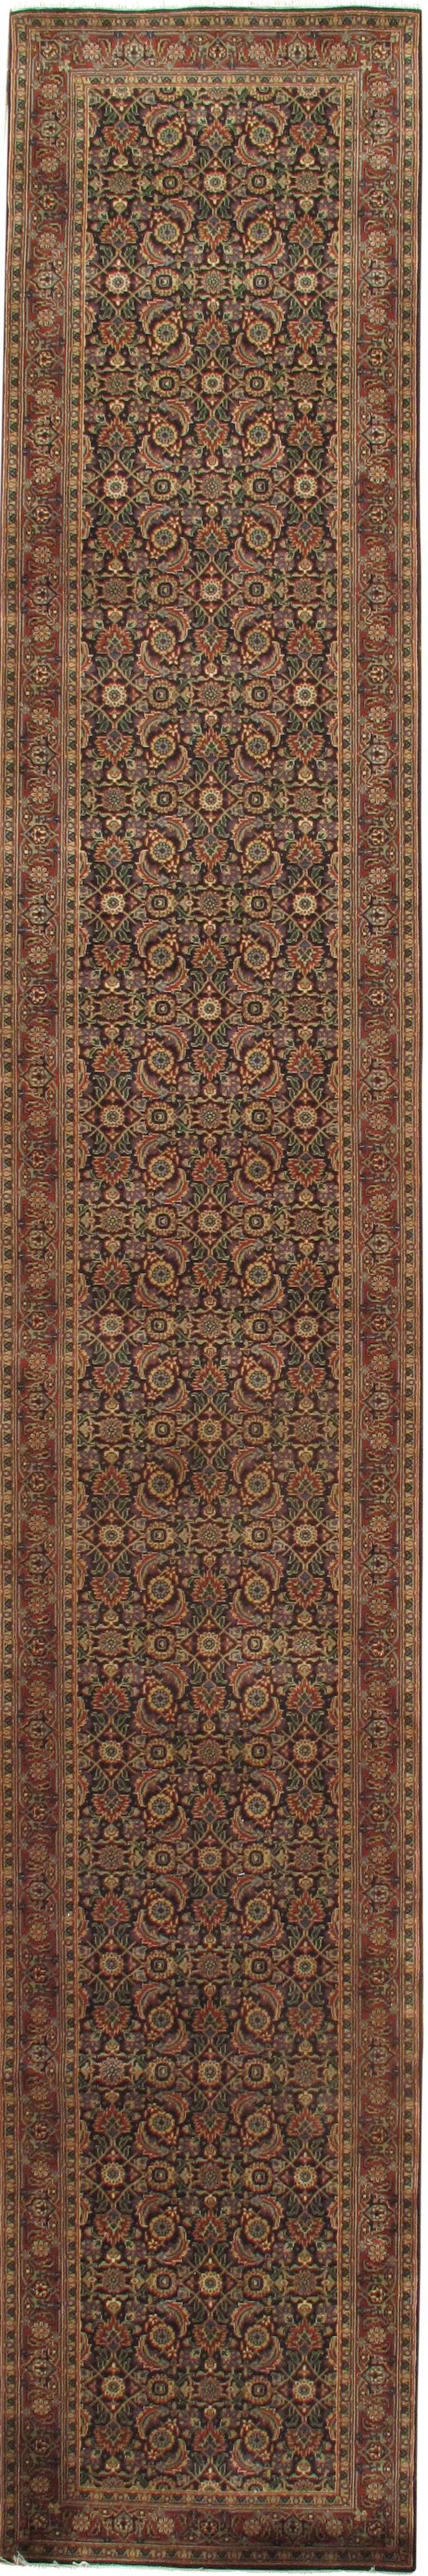 Indo Hand Knotted Wool Gold/Brown Area Rug